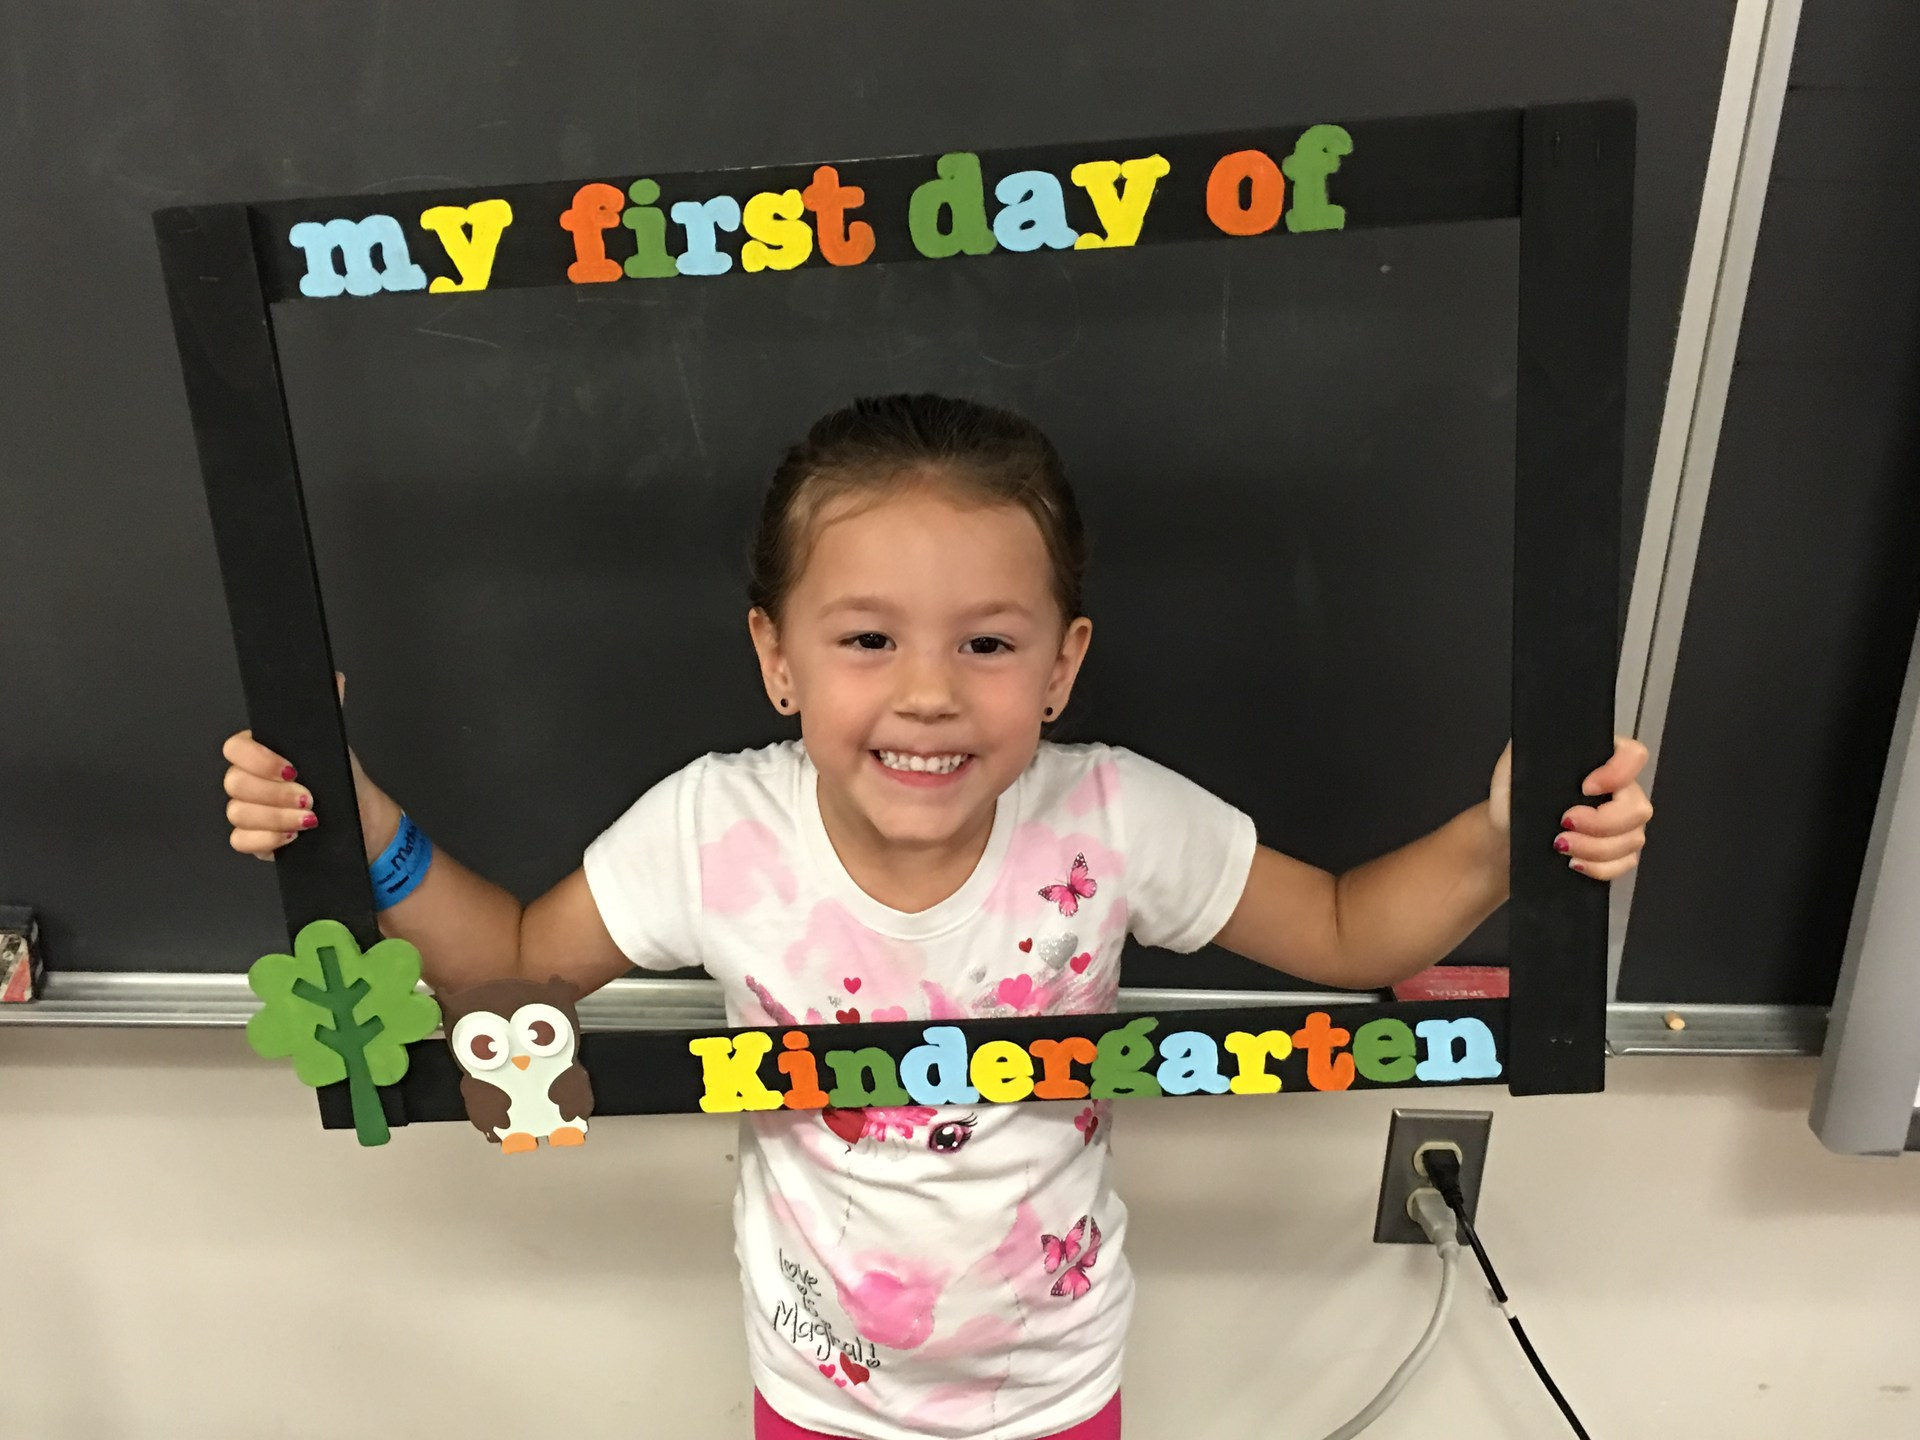 First day of kindergarten.